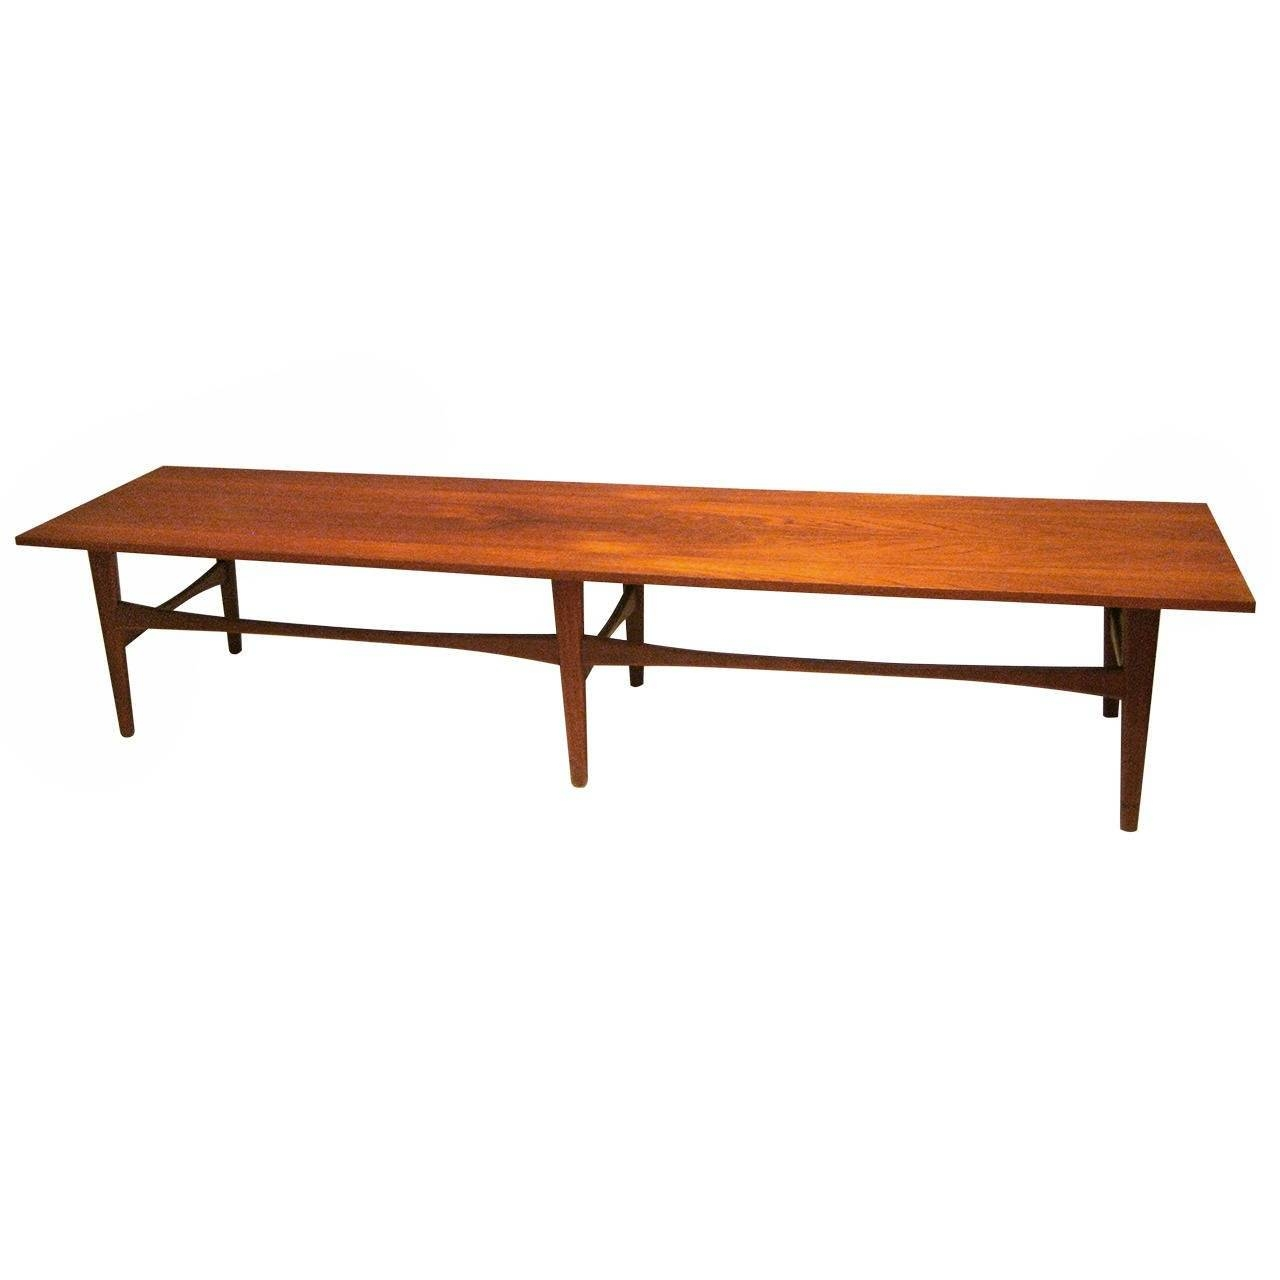 Danish Modern Long Coffee Table Or Bench In Teak At 1Stdibs throughout Long Coffee Tables (Image 6 of 15)